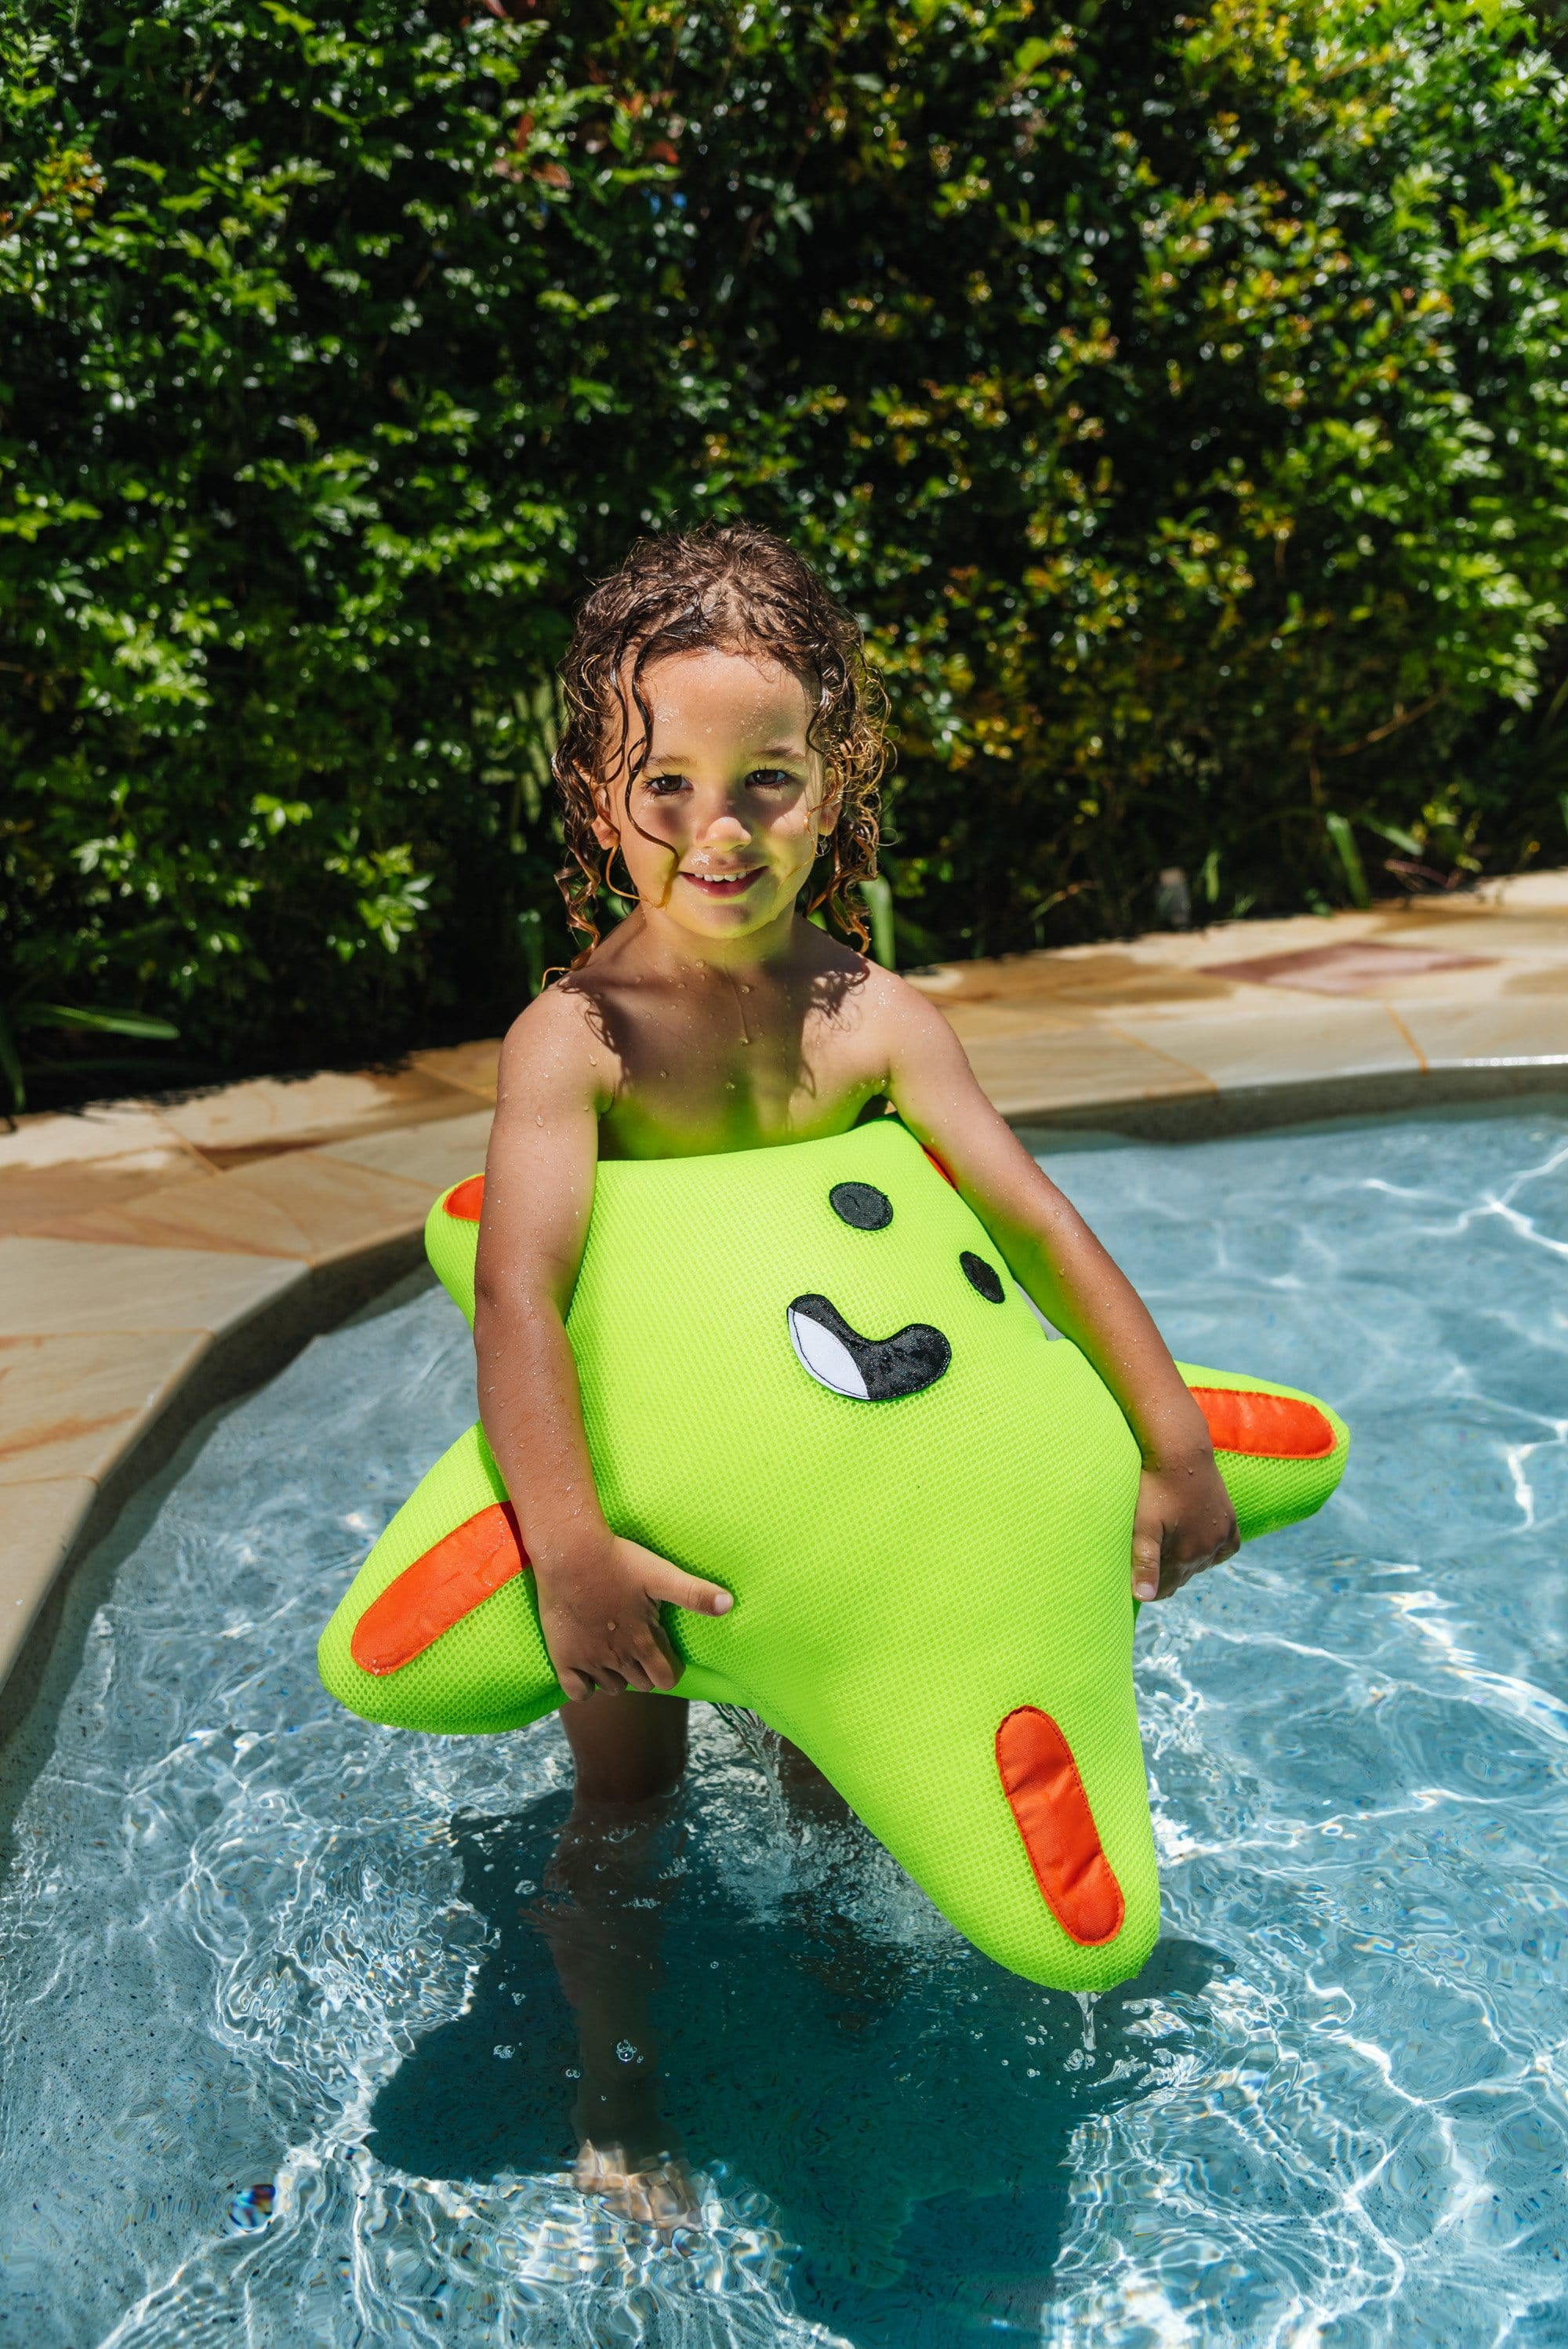 Star Fish Pool Toy - Epona Co. Lifestyle Indoor and Outdoor Bean Bags